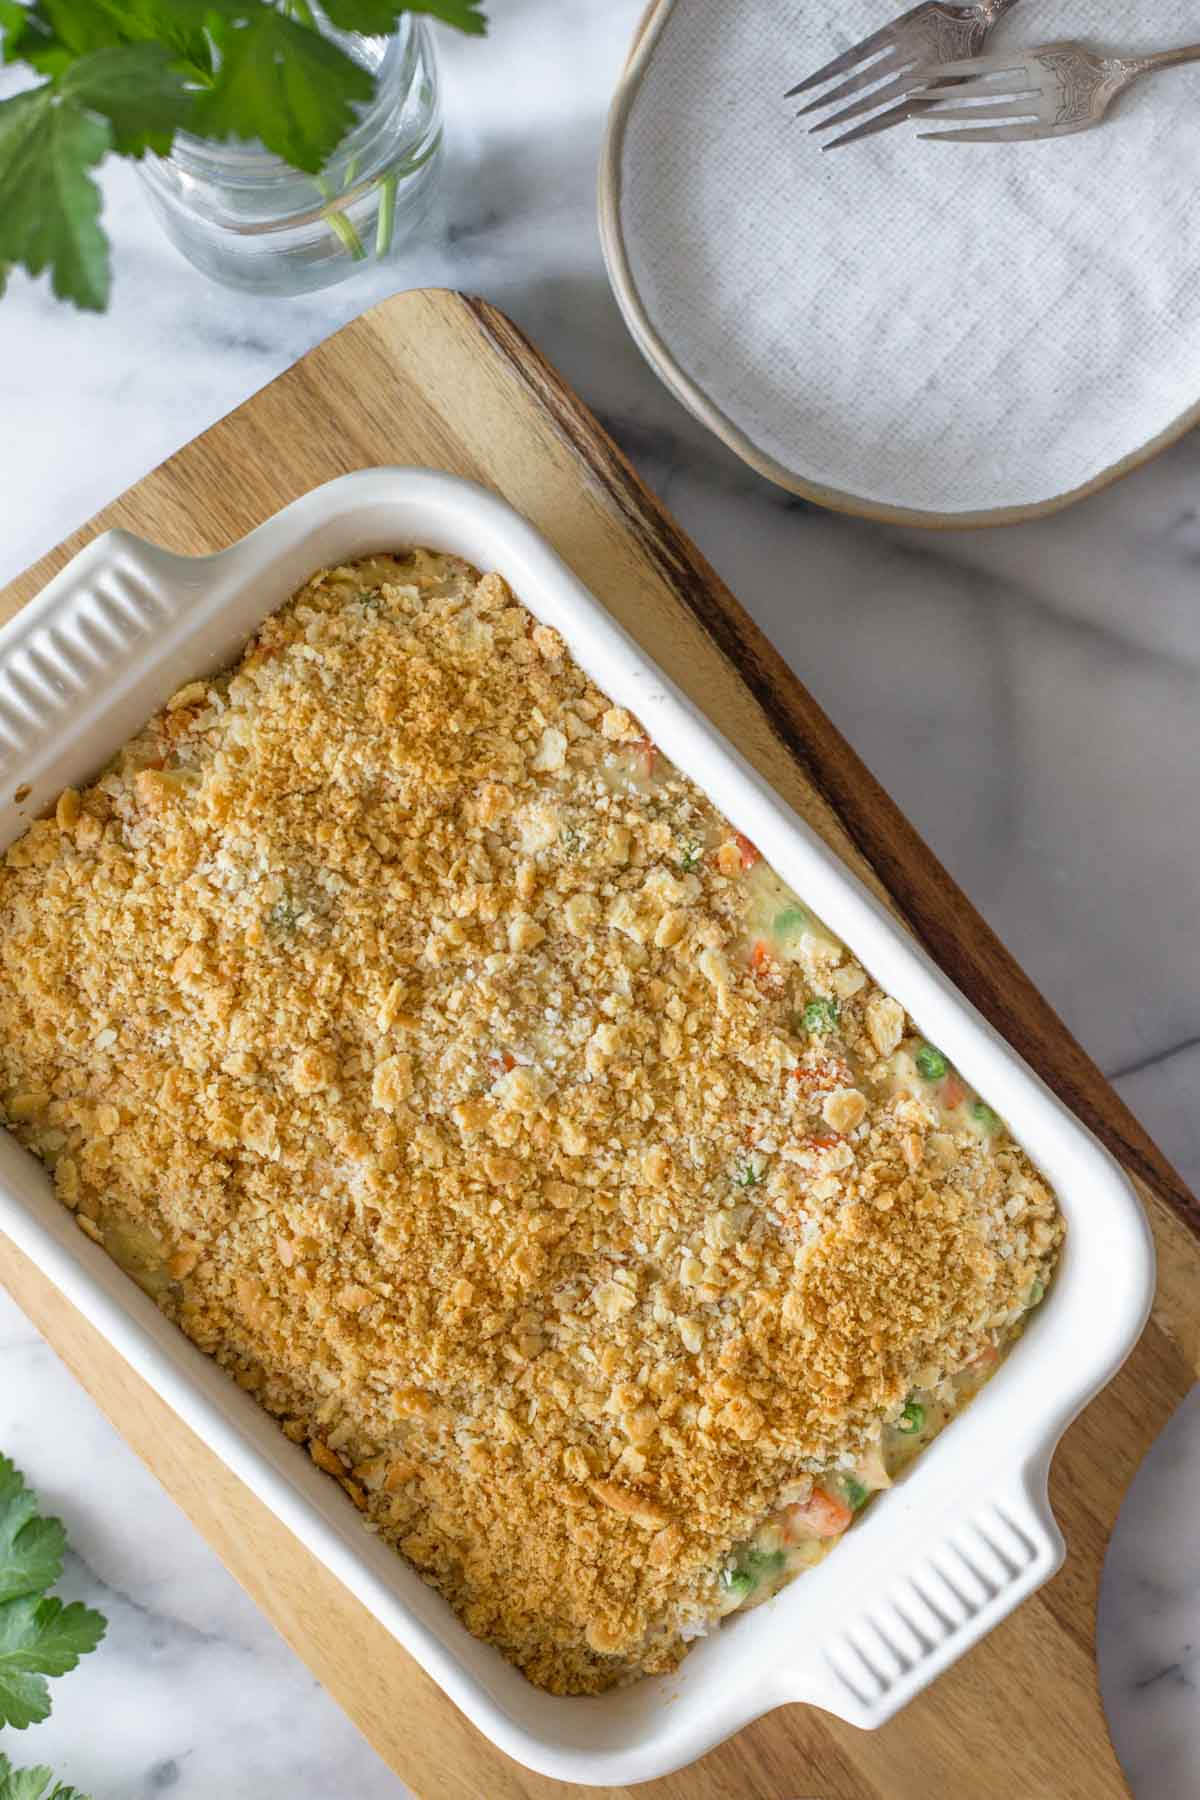 Overhead view of Creamy Chicken and Rice Bake in a white casserole dish.